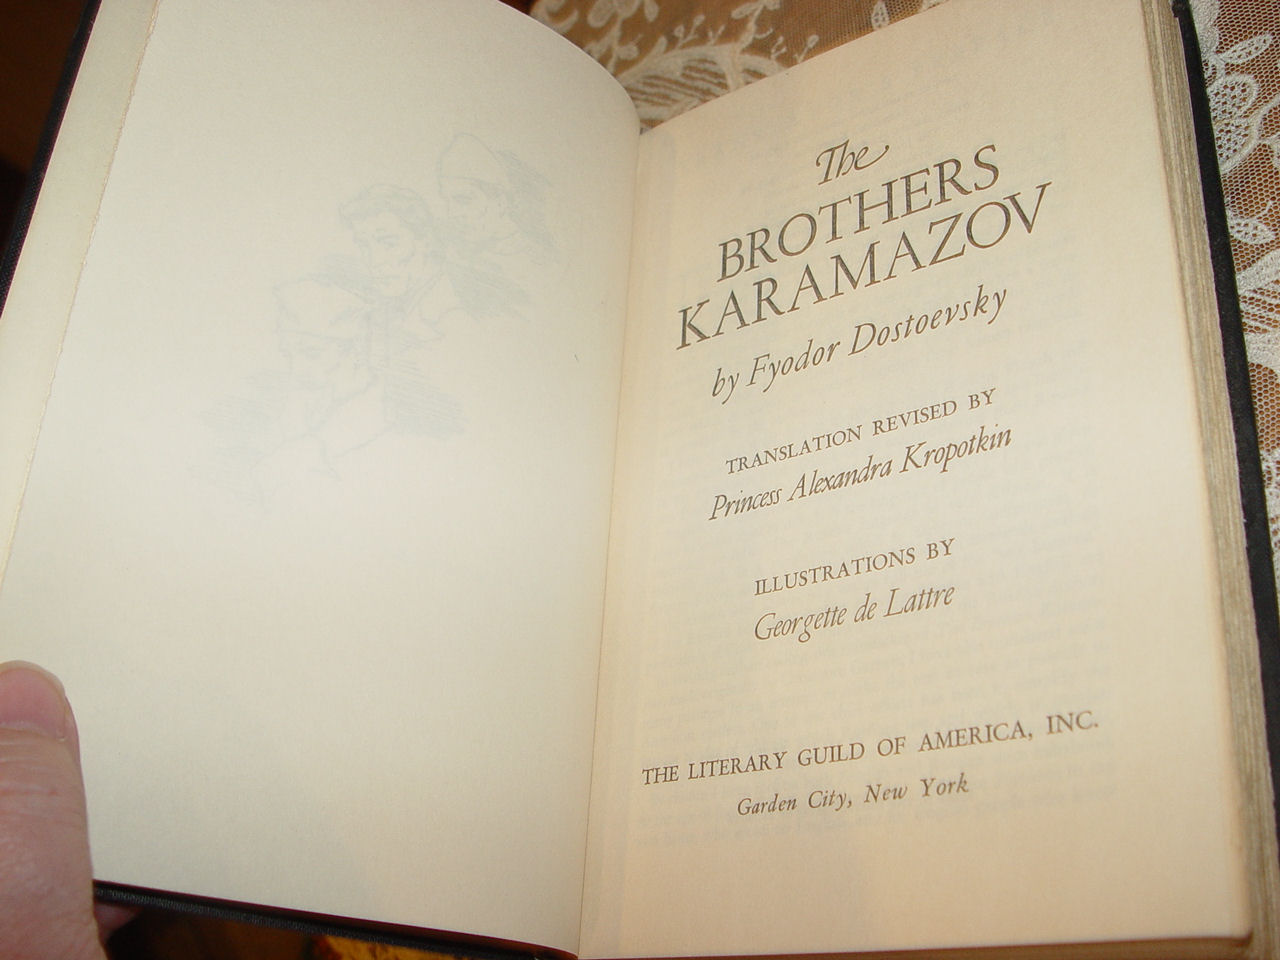 The Brothers                                         Karamazov by Fyodor Dostoevsky ~                                         The Literary Guild of America                                         (1953)